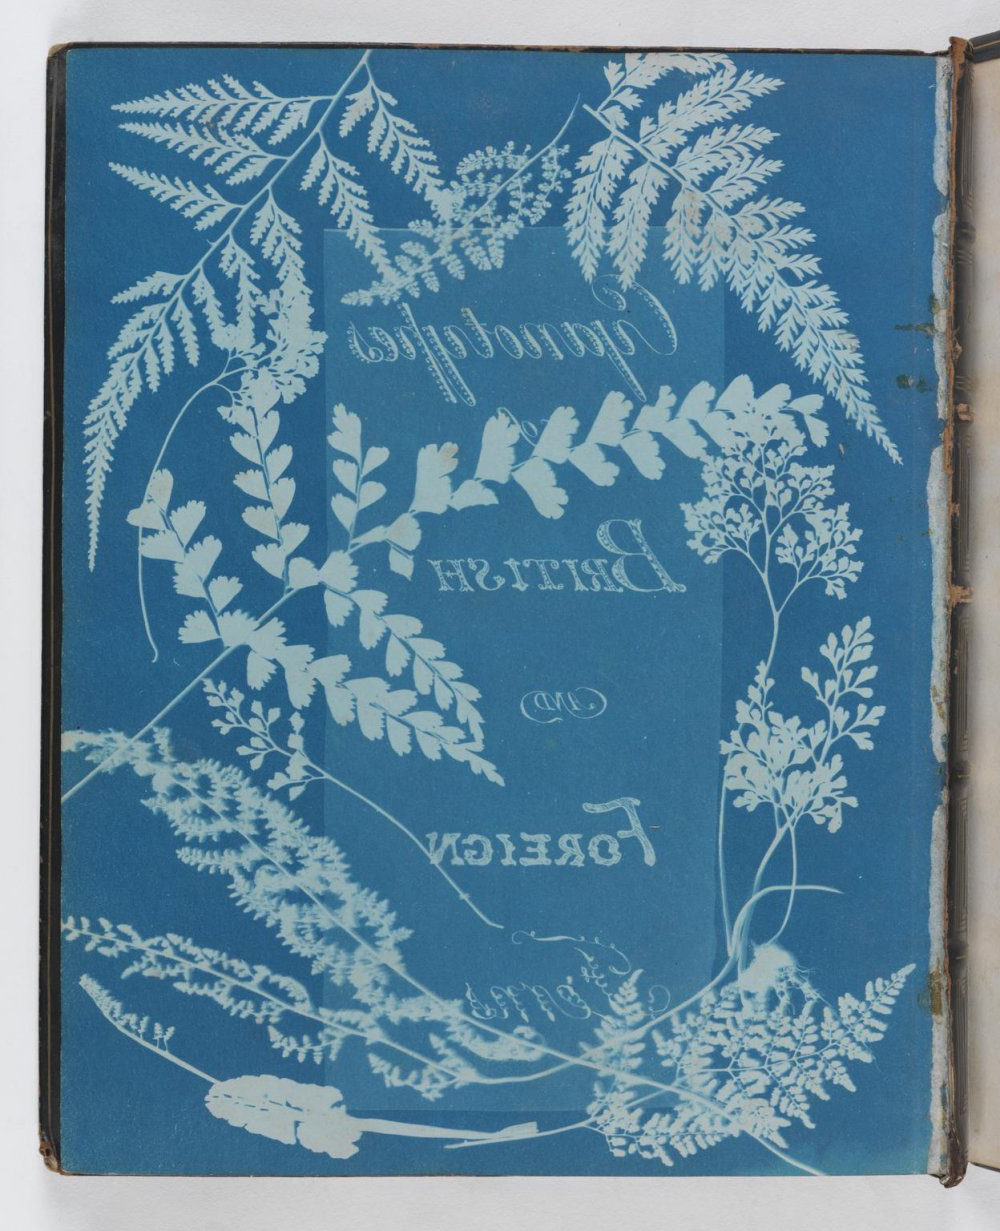 A photograph of a book with a light blue cover illustrated with white floral patterns